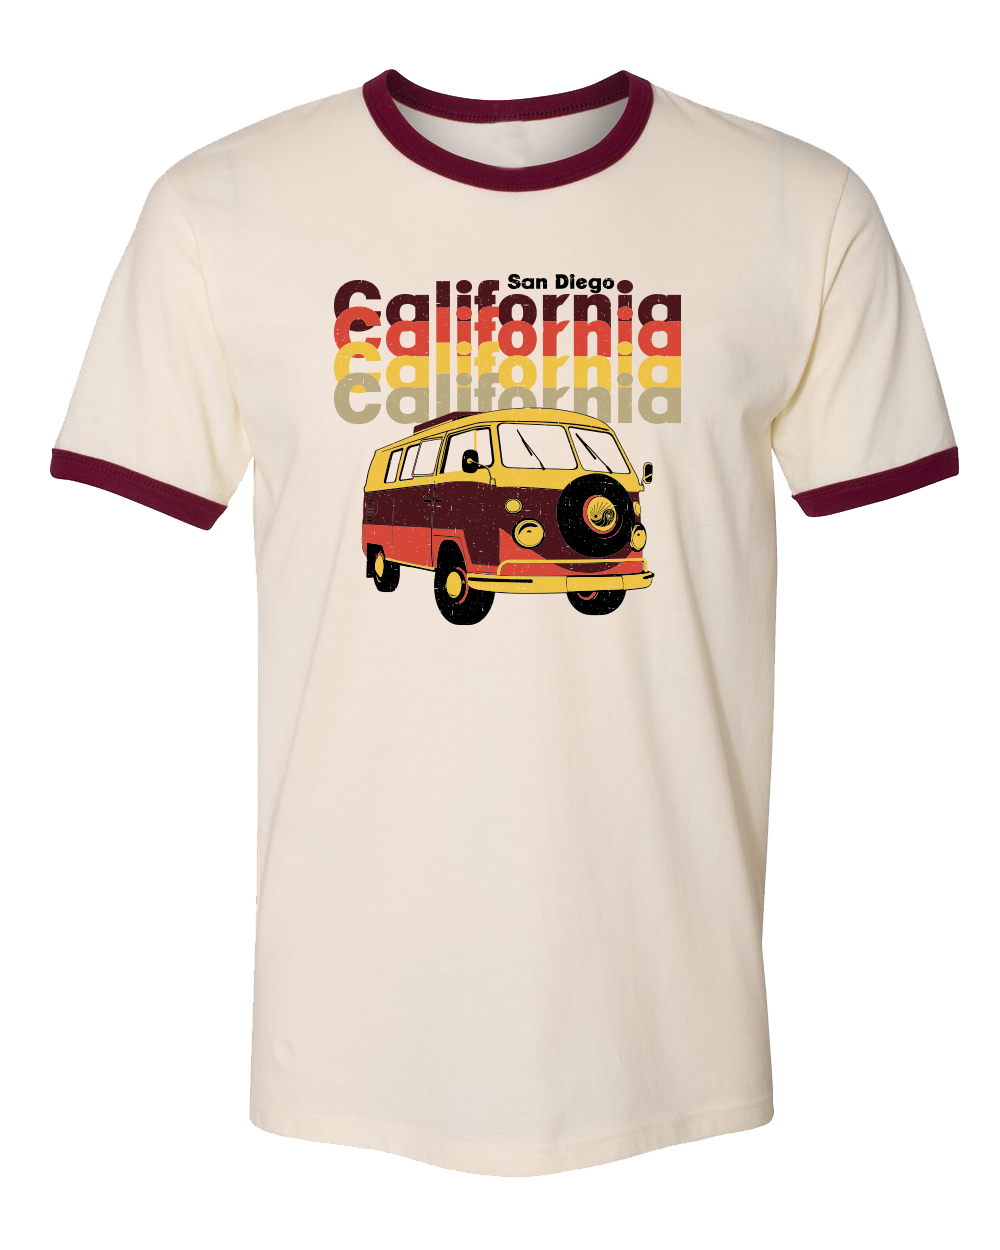 Solid Natural men's tshirt with maroon ribbing on colar and sleves. San Diego verbiage and California repeated four times with a volk wasgon van underdeath in orange yellow khaki colors. Sold by SDTrading Co.